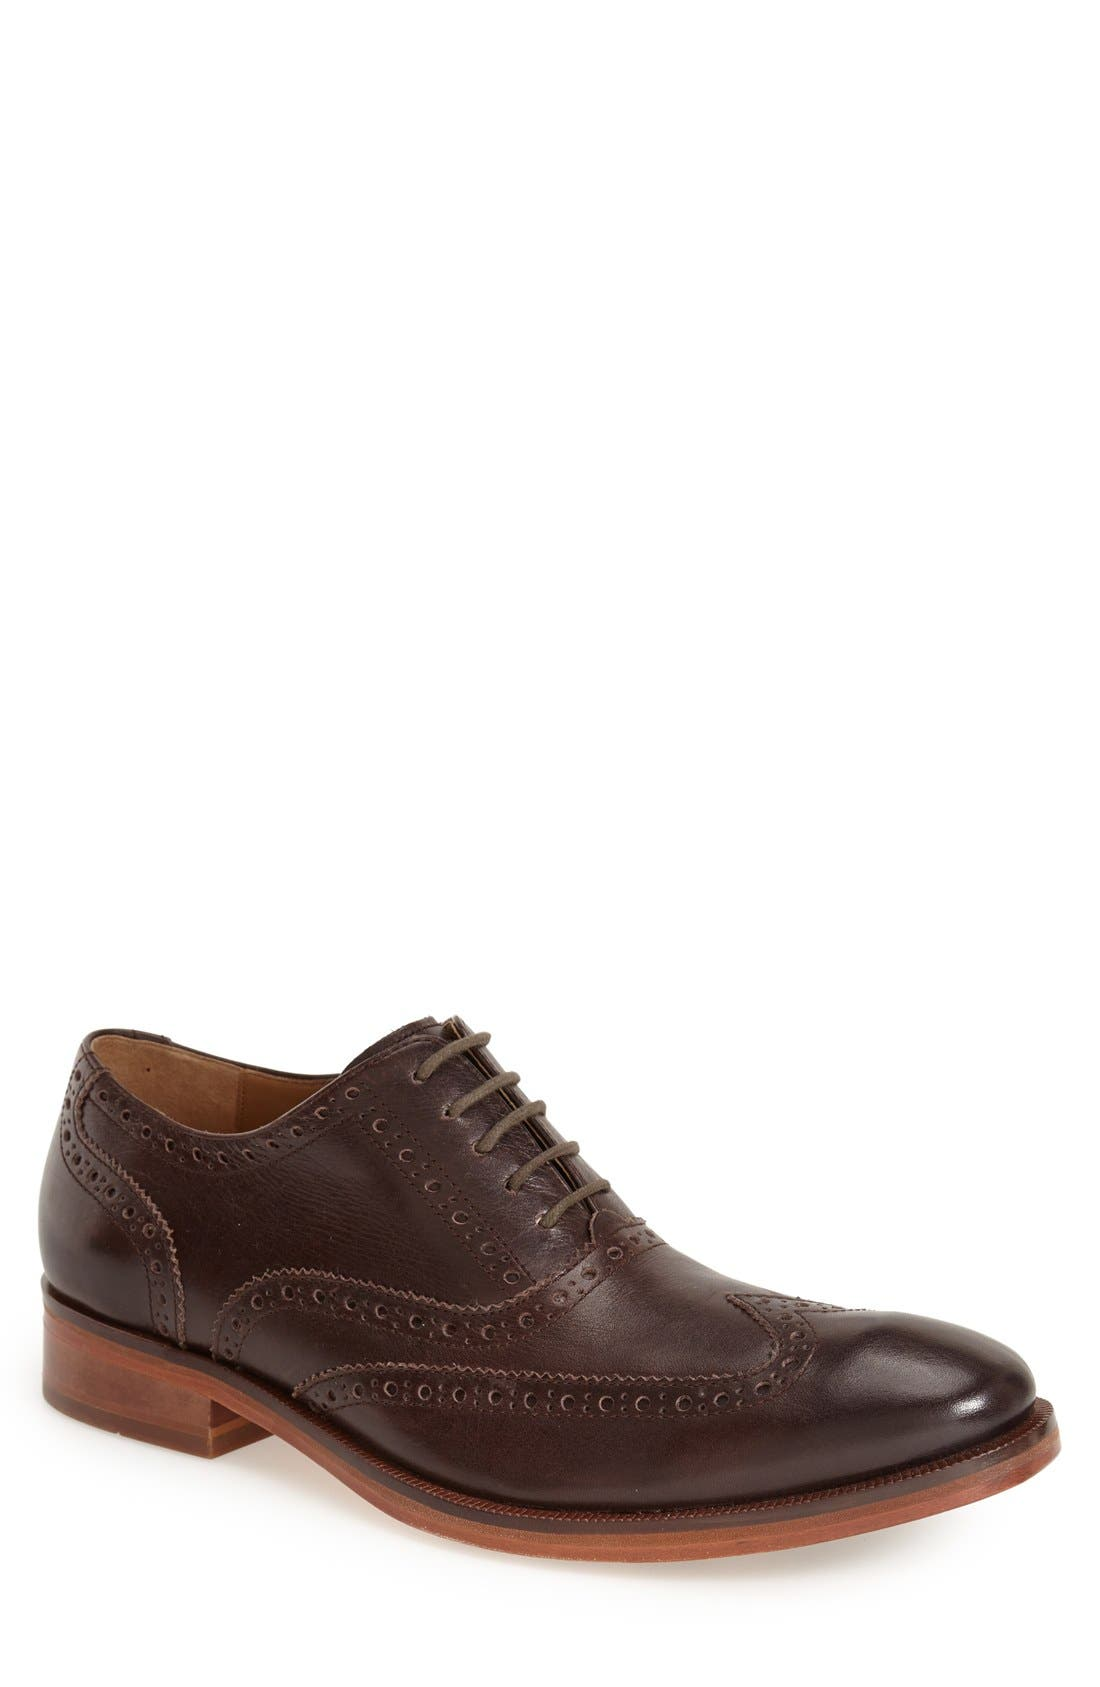 Main Image - Cole Haan 'Colton' Wingtip Oxford